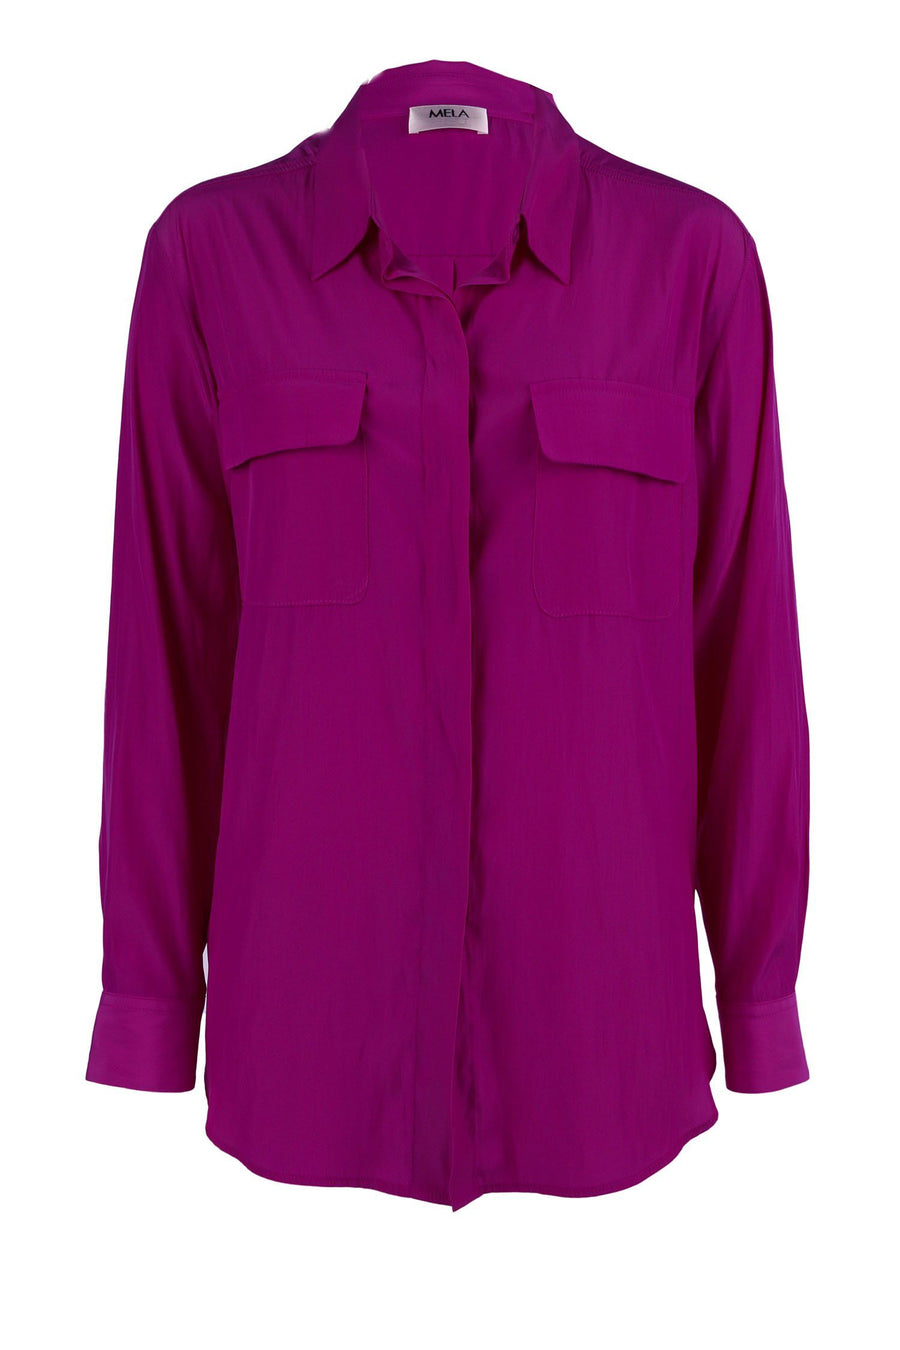 Soft Pocket Shirt in Orchid